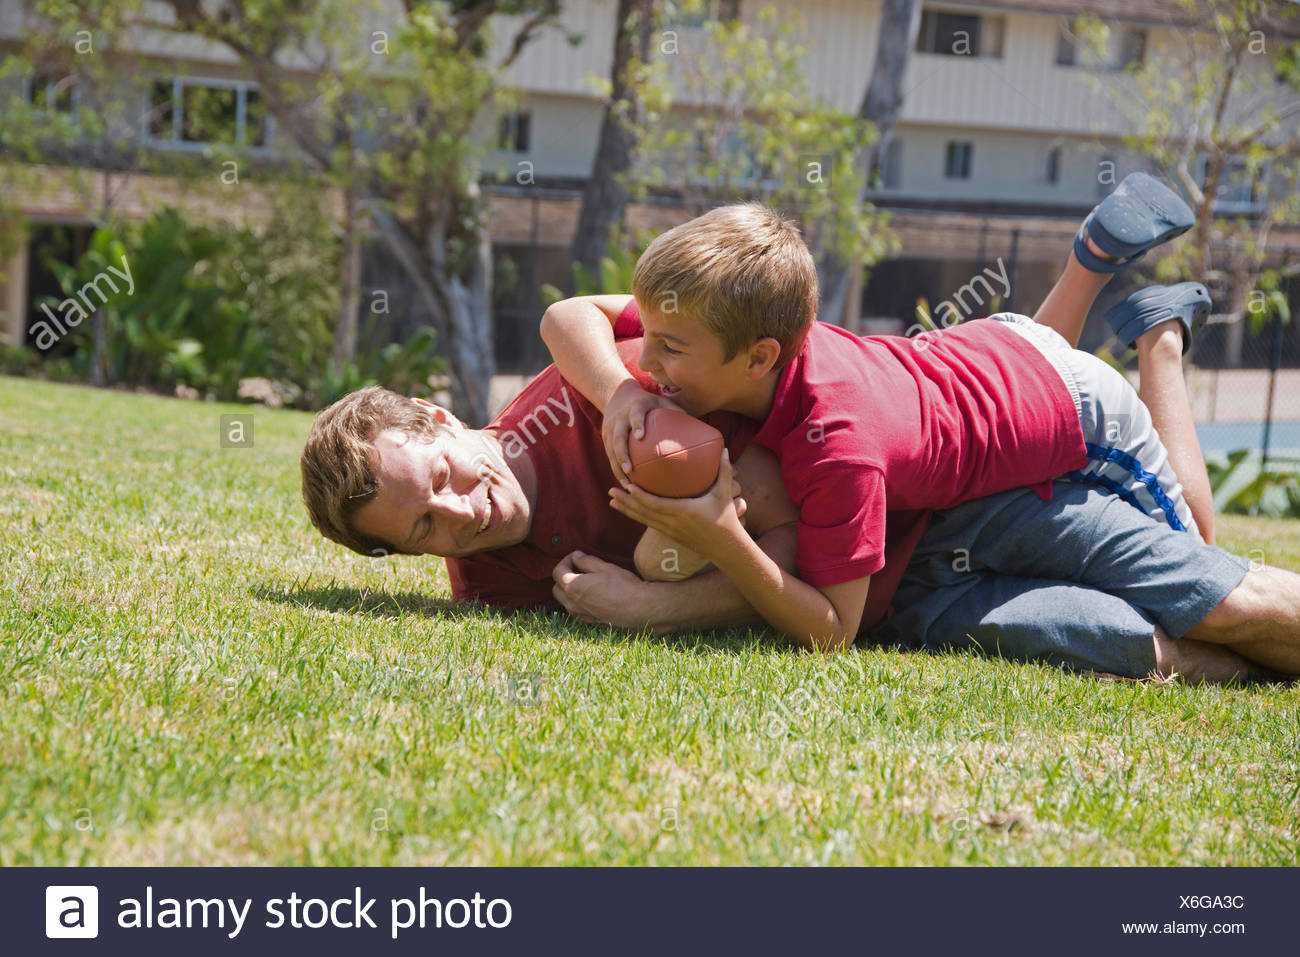 Boy tackling father playing american football in park - Stock Image